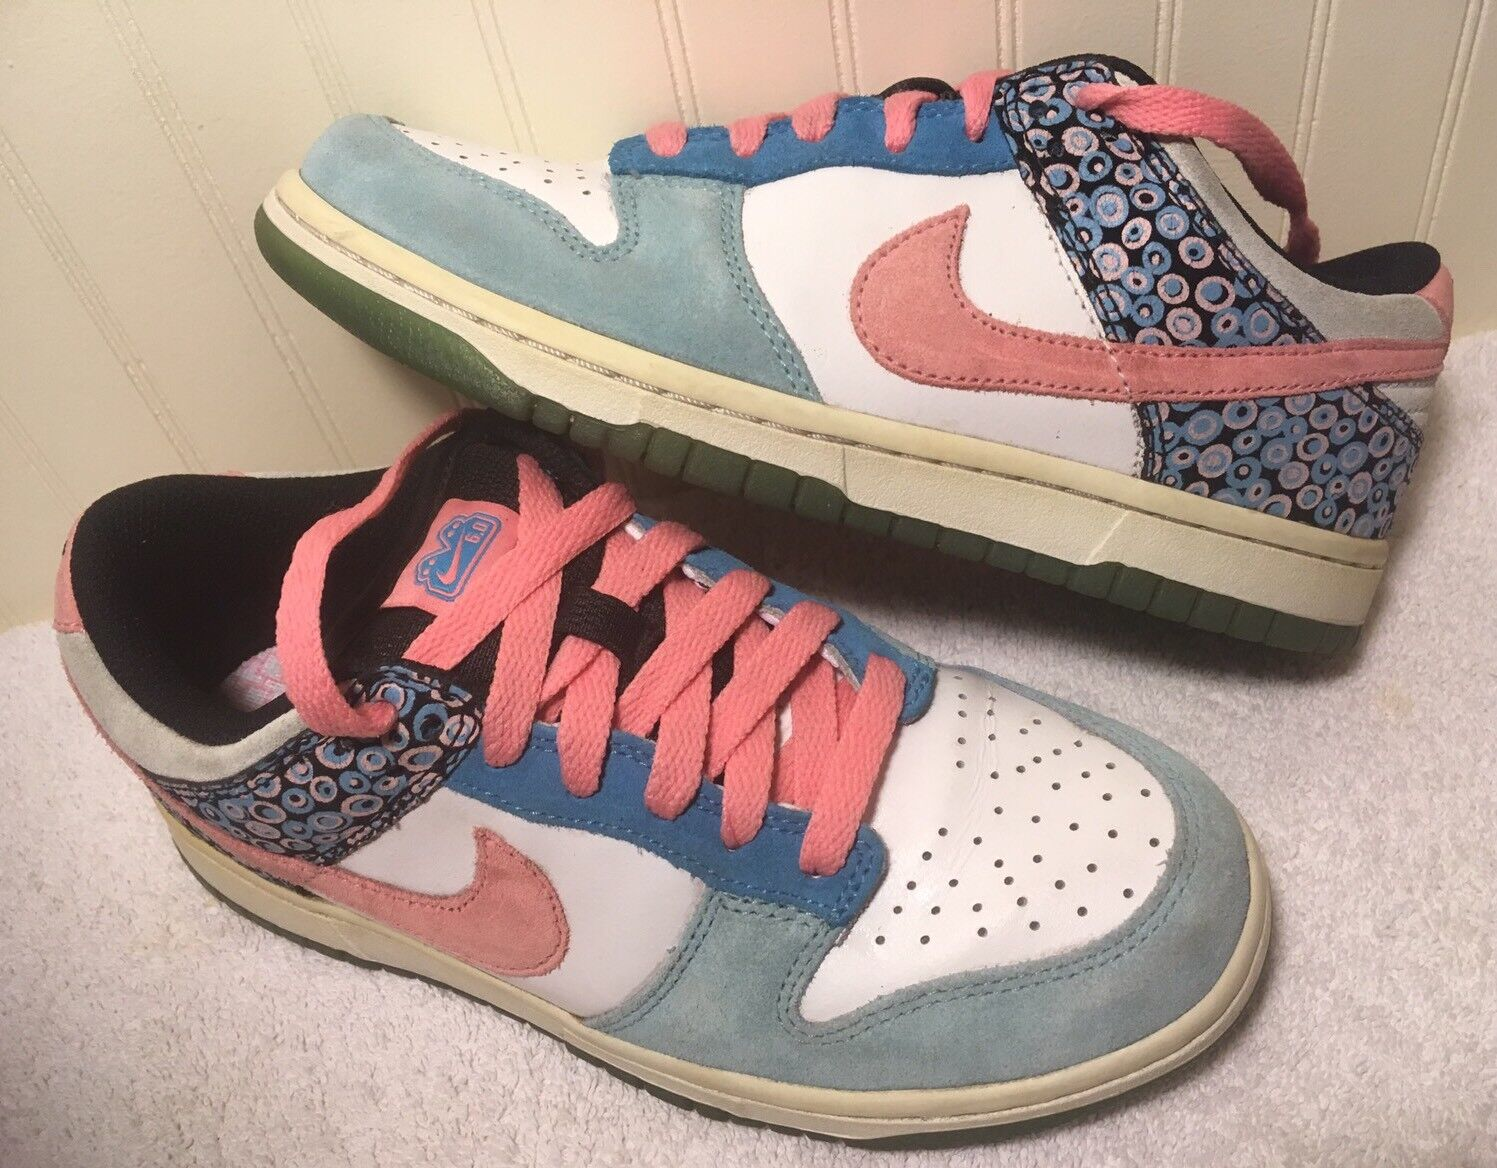 Nike 6.0 Dunk Low Skateboard Shoes Women's US 7 U.K 4.5 White Blue Pink  314141 Comfortable and good-looking